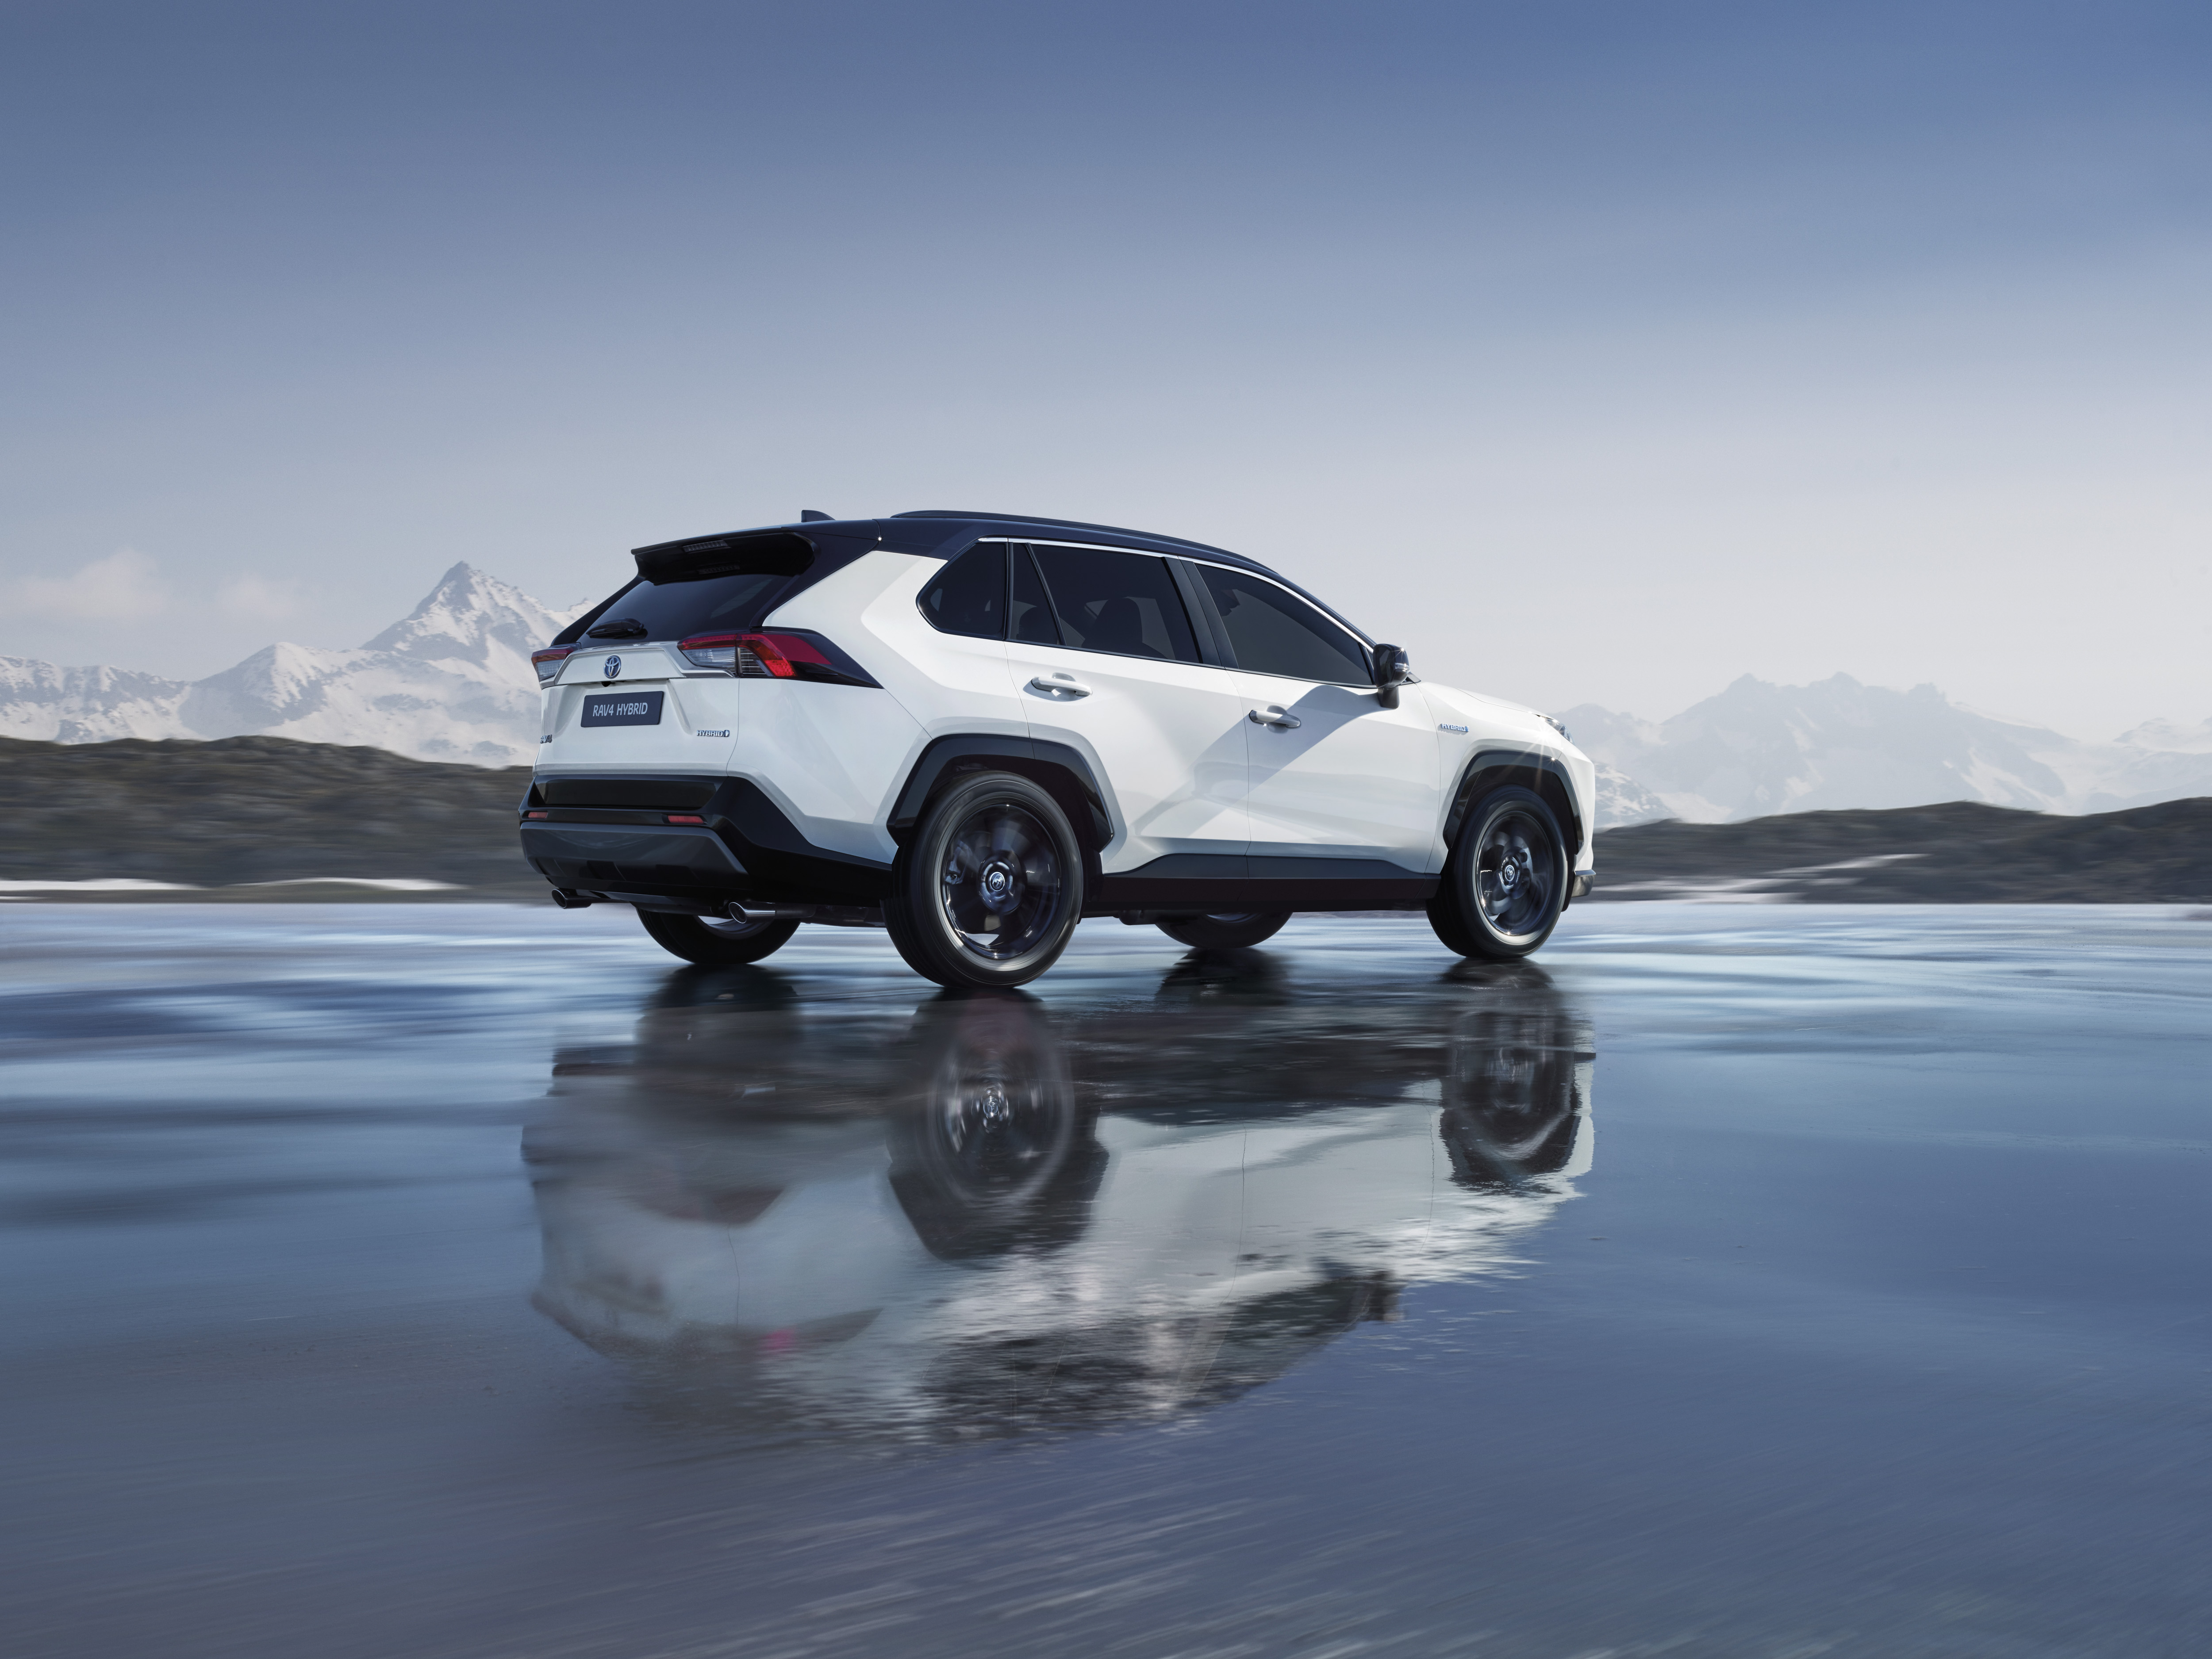 2019 toyota rav4 hybrid an suv with 4 5 l 100 km consumption. Black Bedroom Furniture Sets. Home Design Ideas